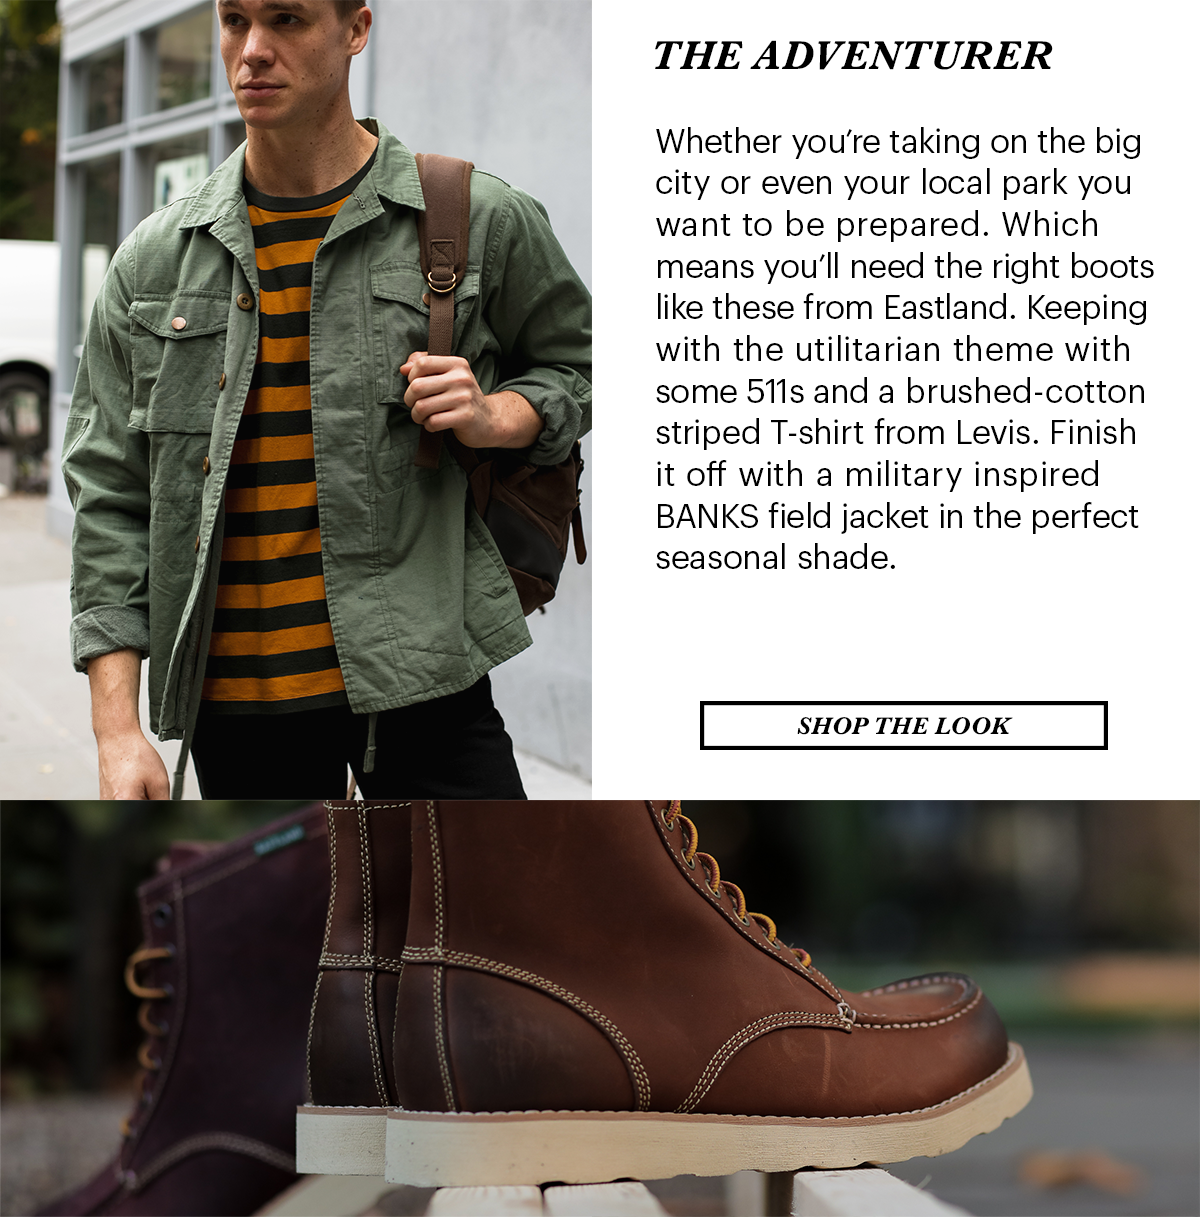 The Adventurer. Whether you're taking on the big city or even your local park, you want to be prepared. Which means you'll need the right boots like these from Eastland. Keeping with the utilitarian theme with some 511s and a brushed-cotton striped T-shirt from Levi's. Finish it off with a military-inspired BANKS field jacket in the perfect seasonal shade. | Shop the Look